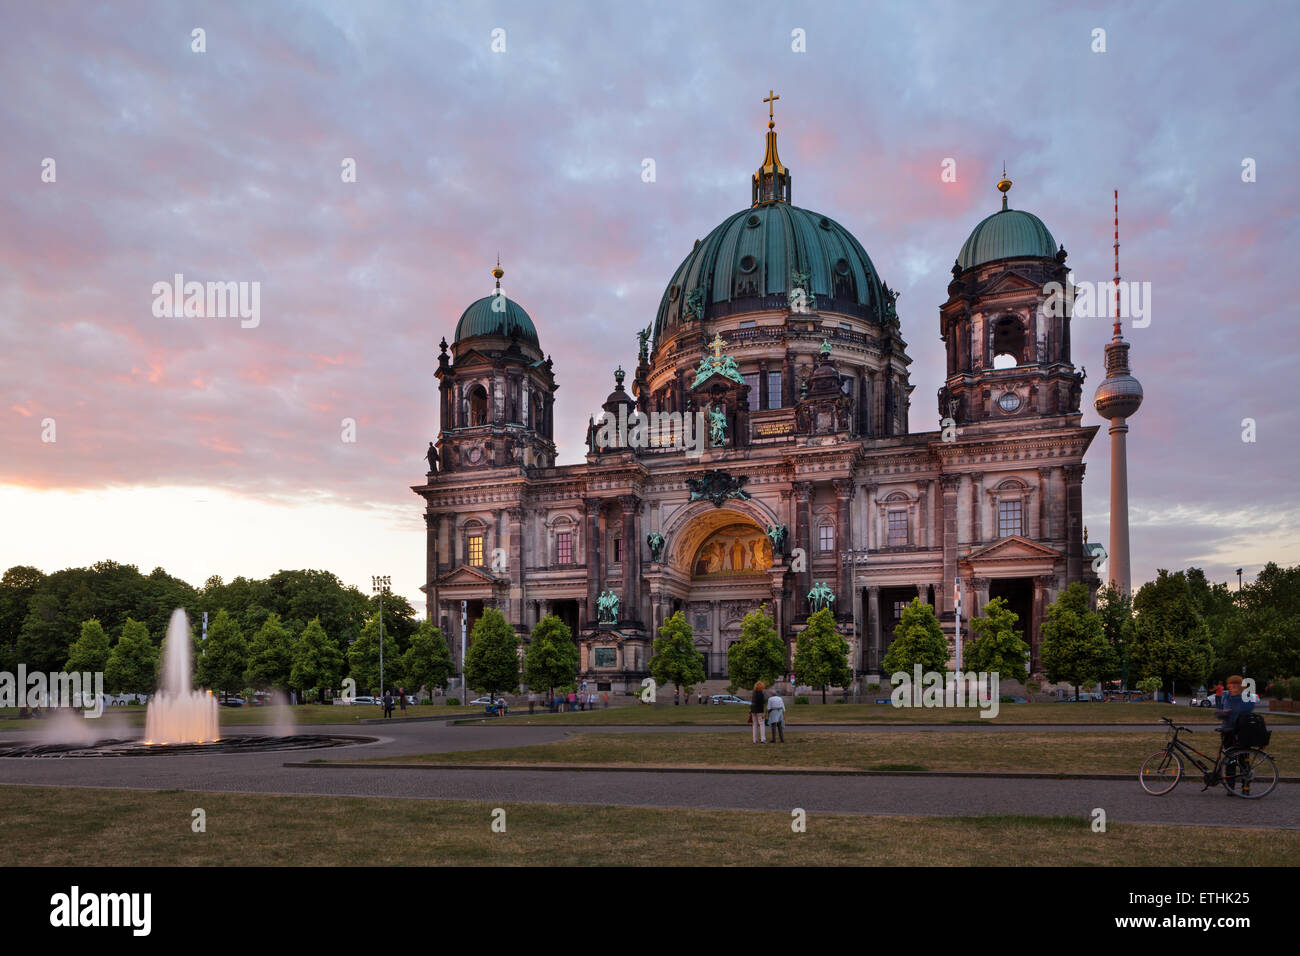 Berlin Cathedral with Television Tower and Lustgarten, Germany - Stock Image